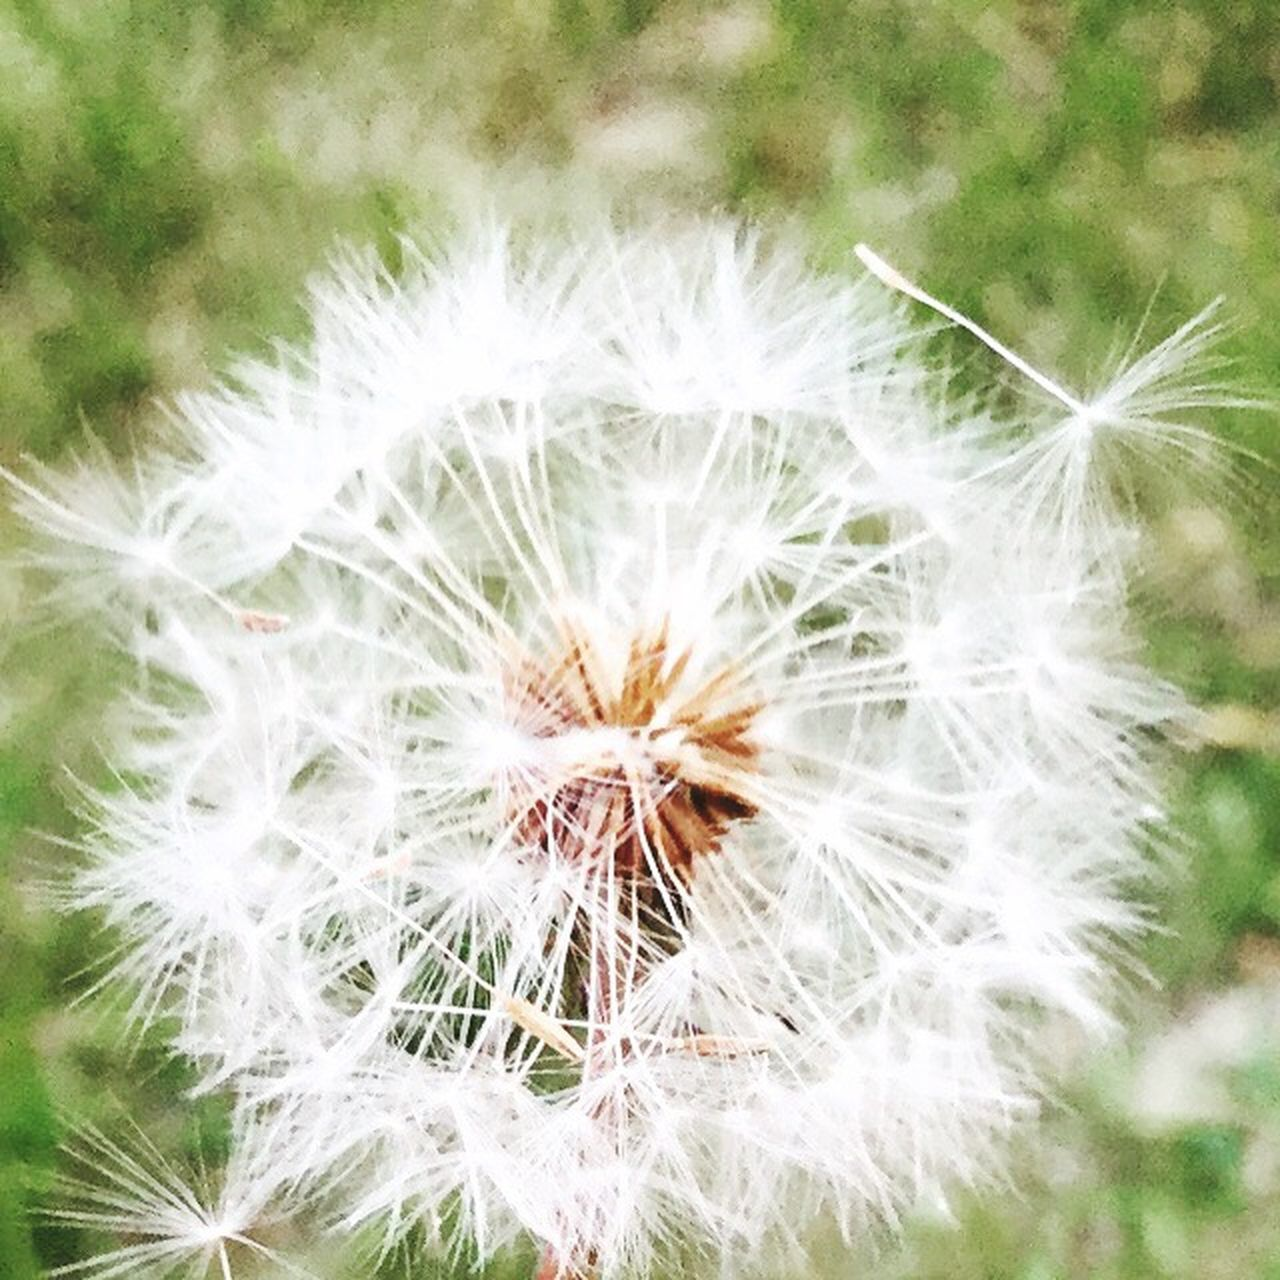 dandelion, flower, nature, fragility, growth, flower head, freshness, uncultivated, wildflower, beauty in nature, close-up, plant, seed, focus on foreground, white color, outdoors, no people, day